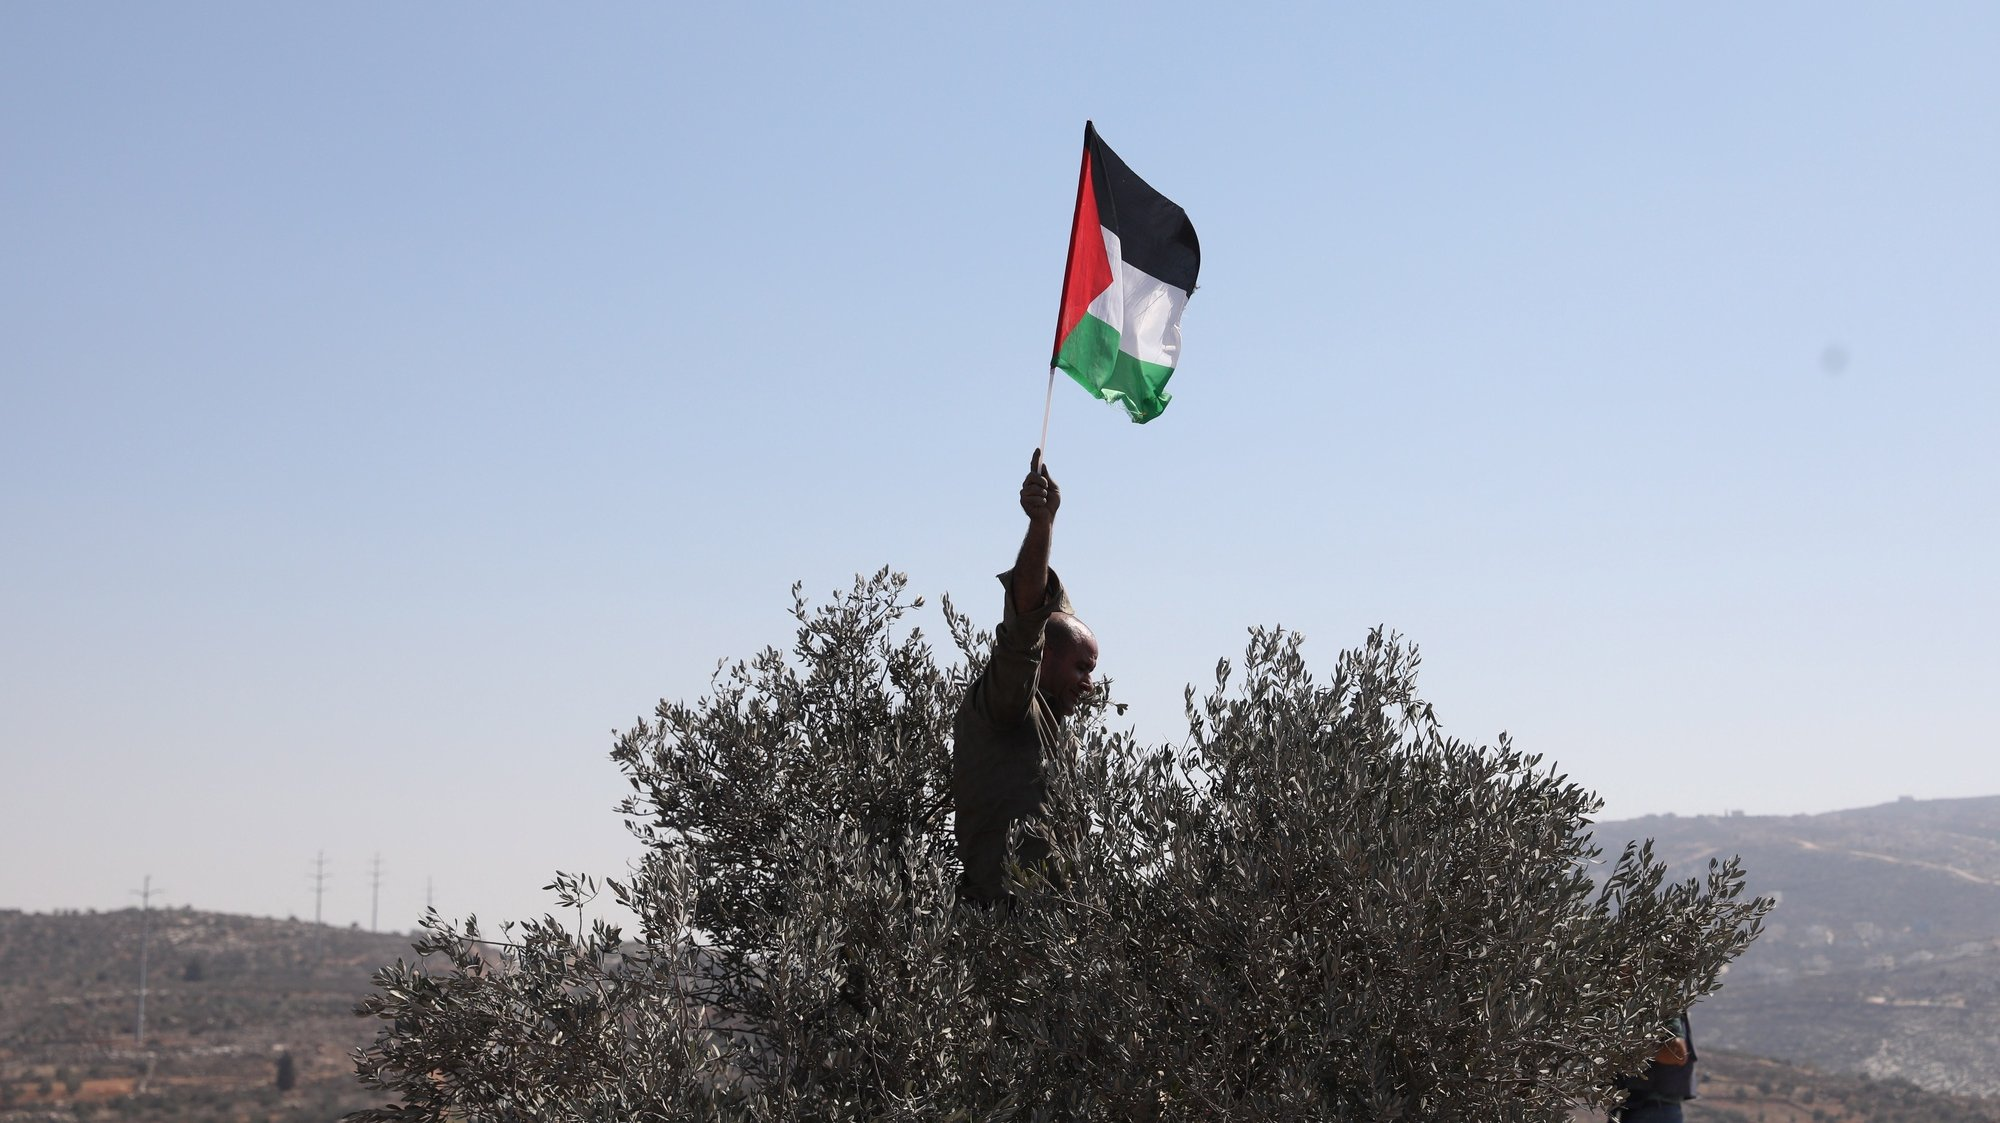 epa09516507 Palestinian waves Palestine flag over olive tree as voulnteers and demonstrators help Palestinian farmers to pick their olives next to the Israeli outpost of Evitar near the village of Beita near Nablus City, 10 October 2021. Palestinian and foreign volunteers and activists pick olives in solidarity with Palestinians whose land was confiscated by Israeli settlers.  EPA/ALAA BADARNEH